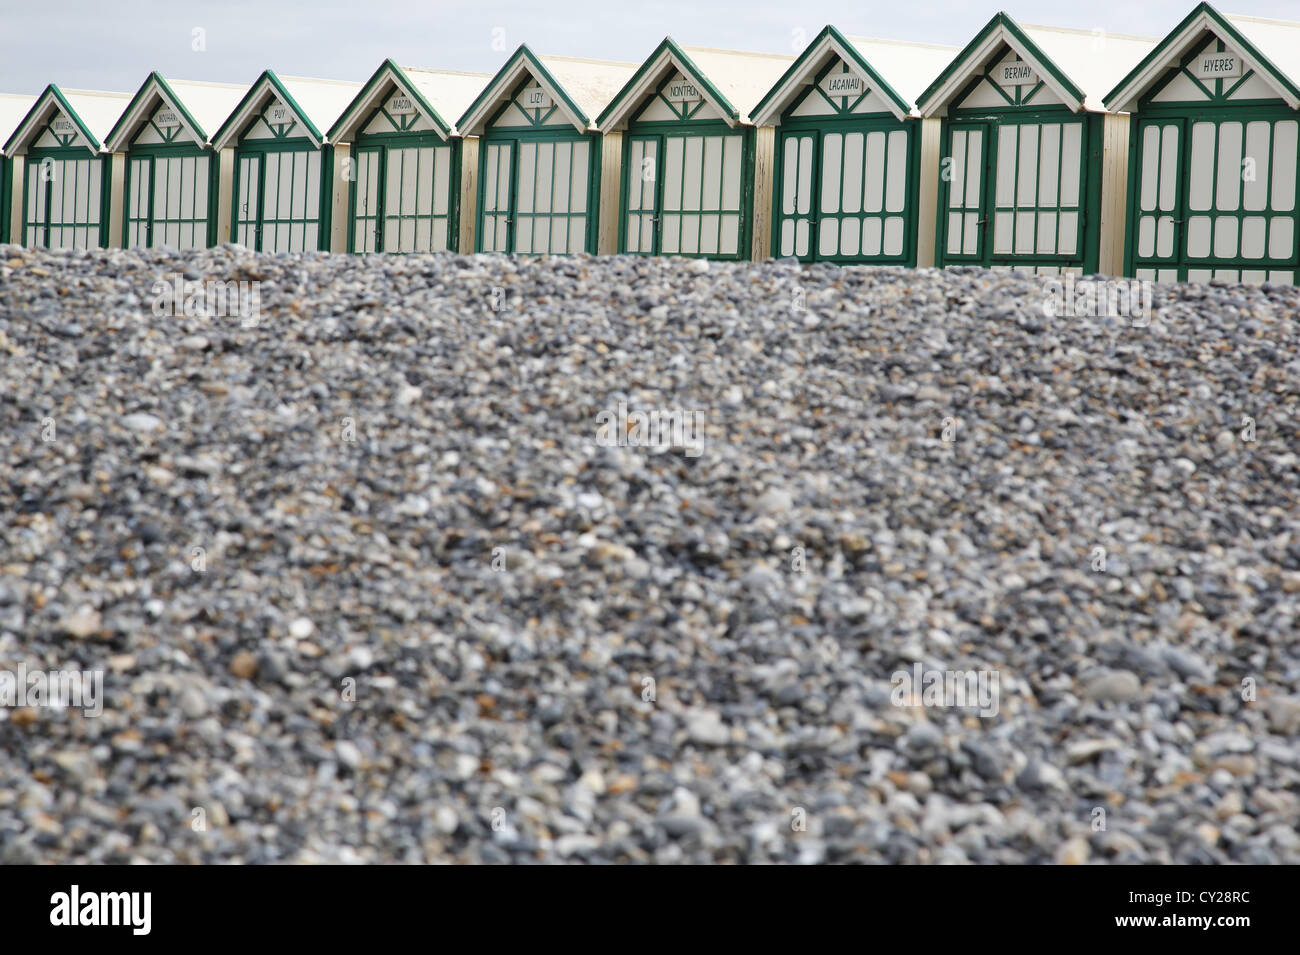 Beach Huts, Cayeux-sur-Mer, Picardie, France Stock Photo